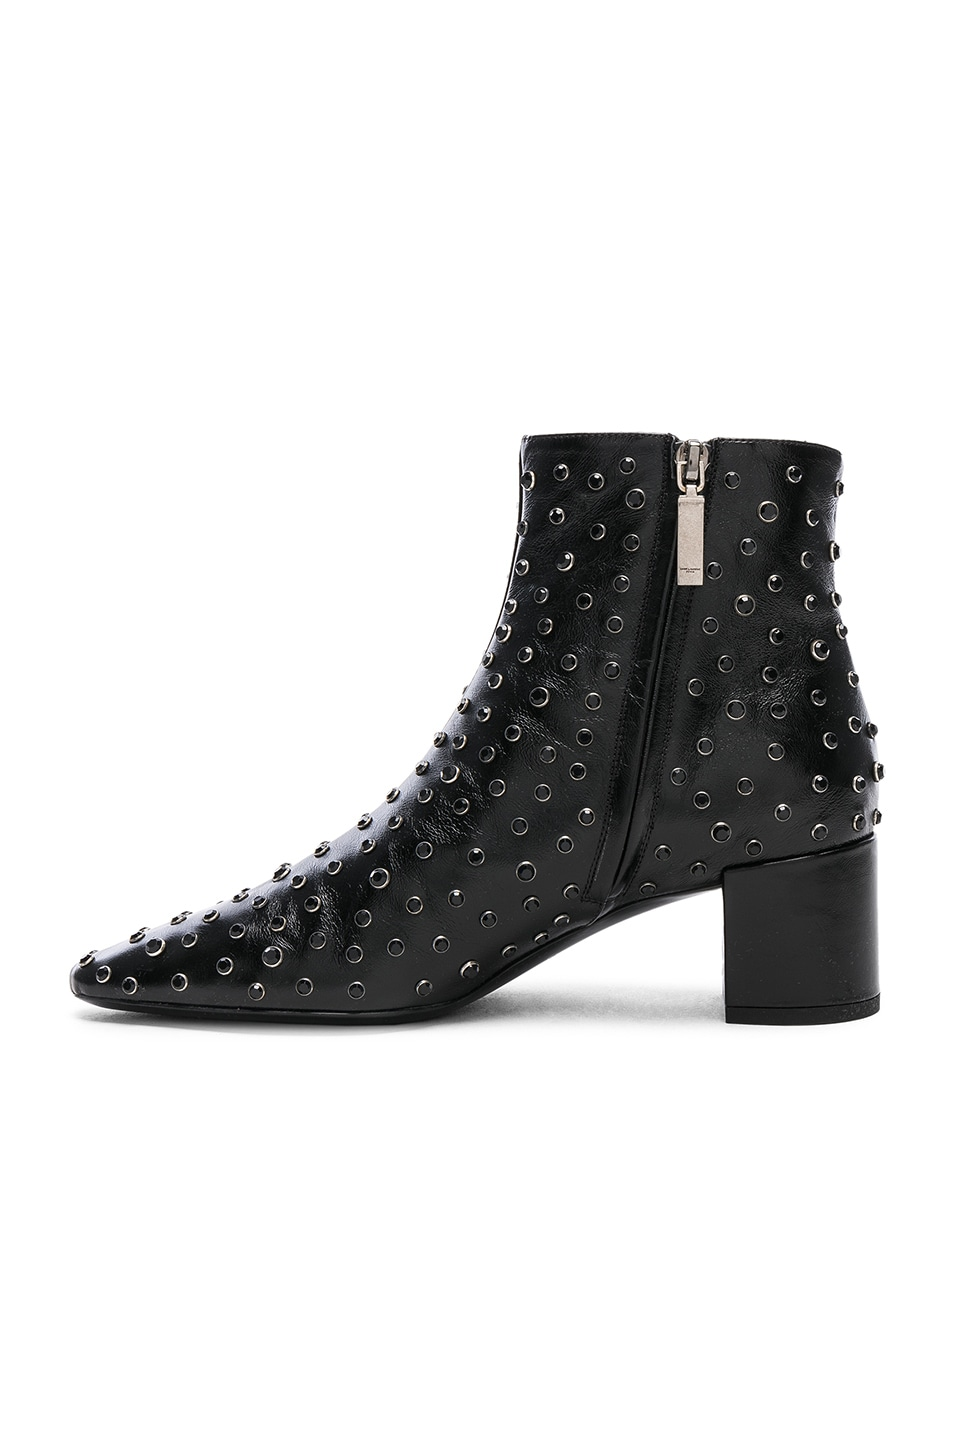 Image 5 of Saint Laurent Loulou Crystal Studded Leather Ankle Boots in Black